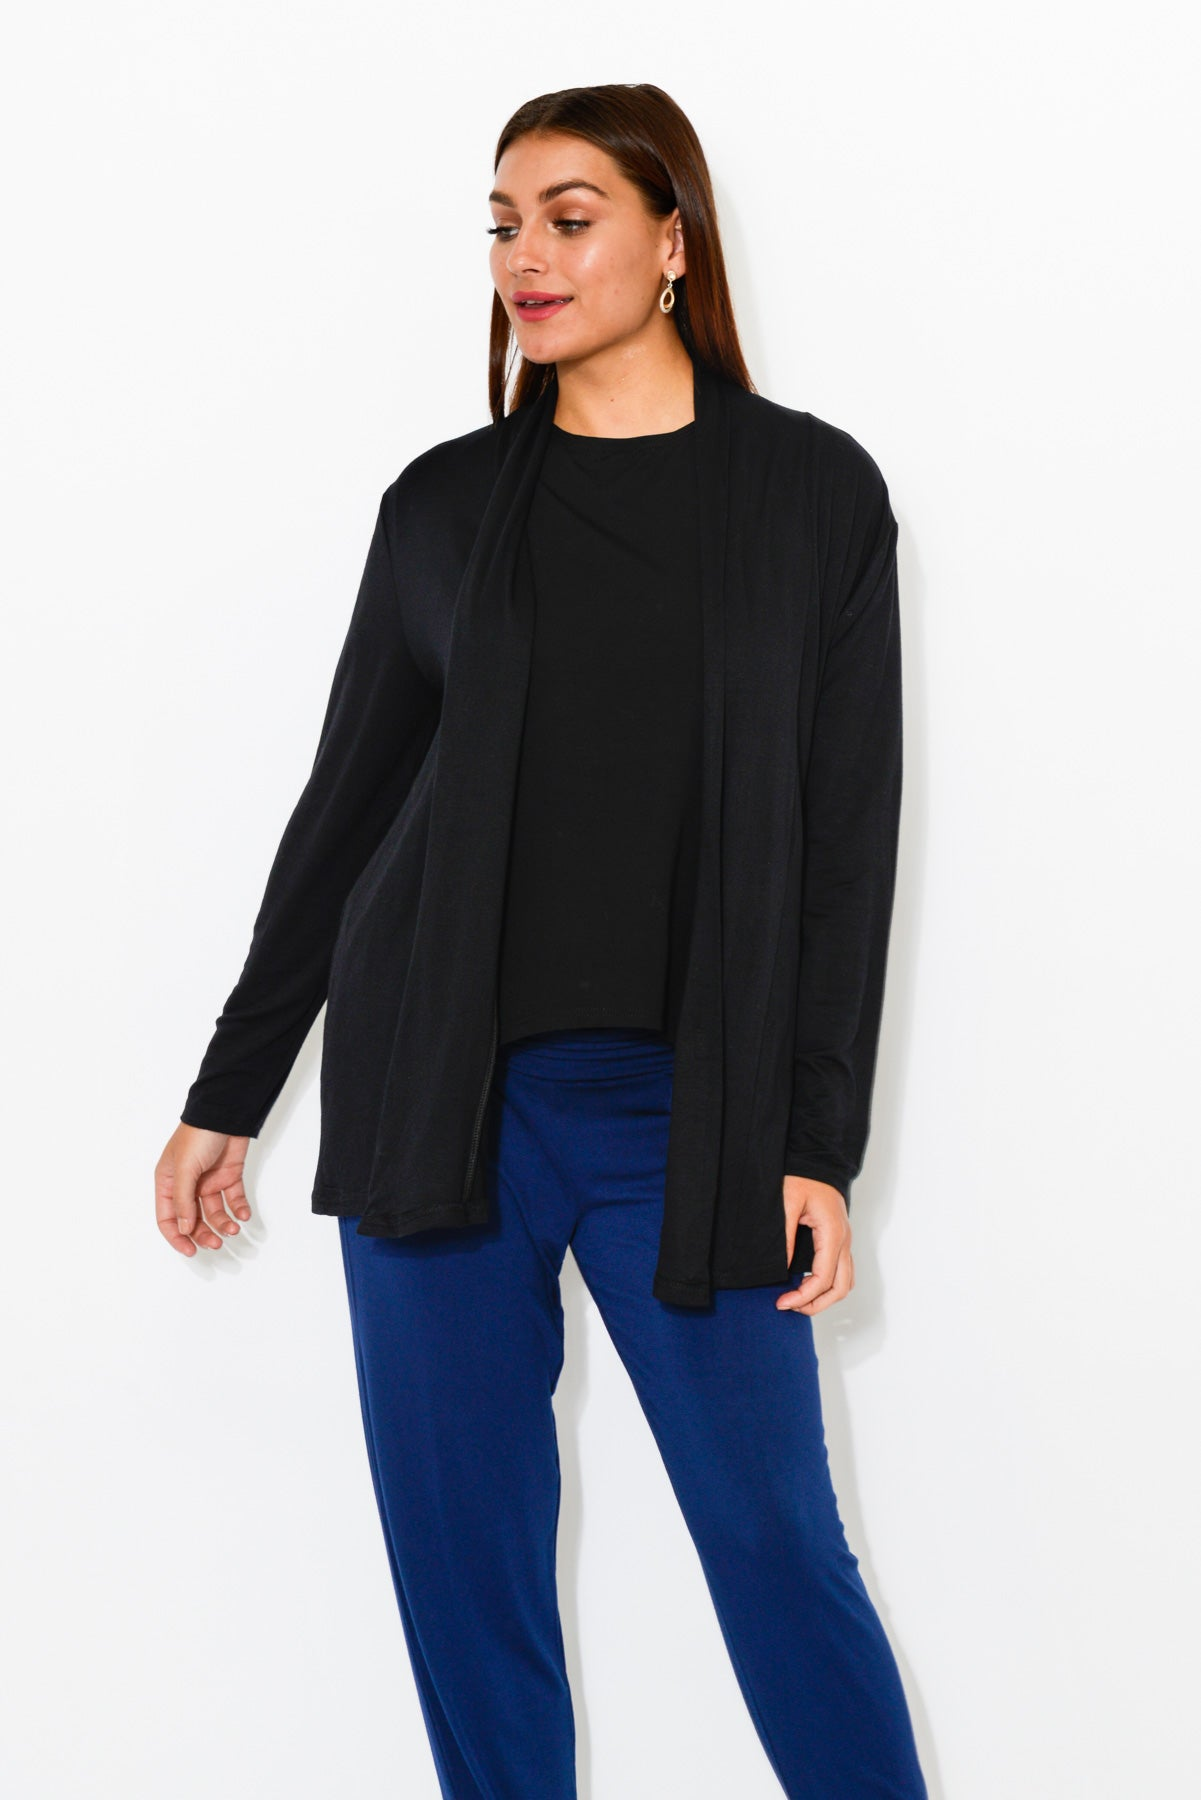 Harper Black Cotton Cardigan - Blue Bungalow